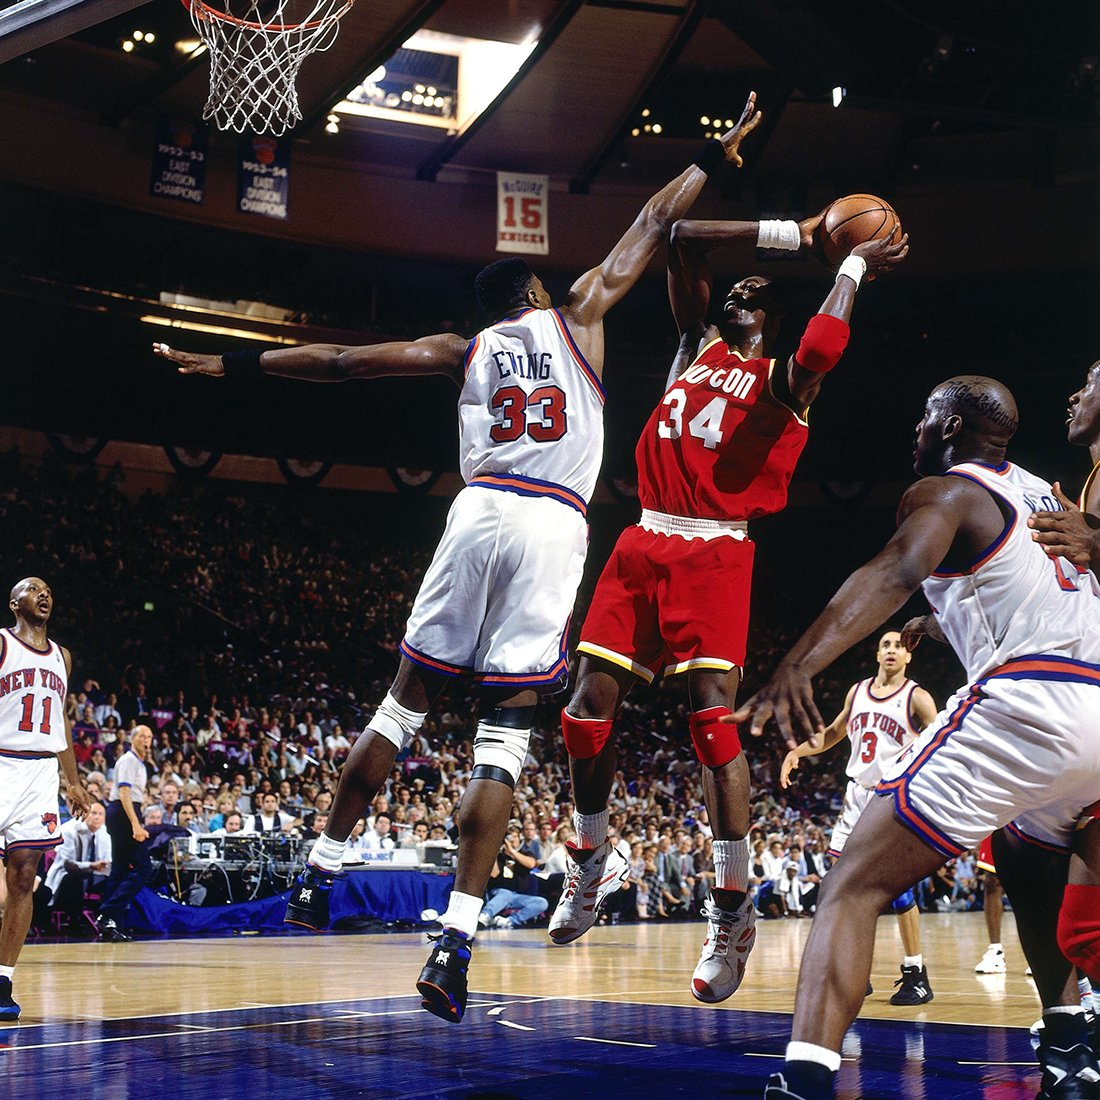 Copyright 1994 NBAE (Photo by Nathaniel S. Butler/NBAE via Getty Images)